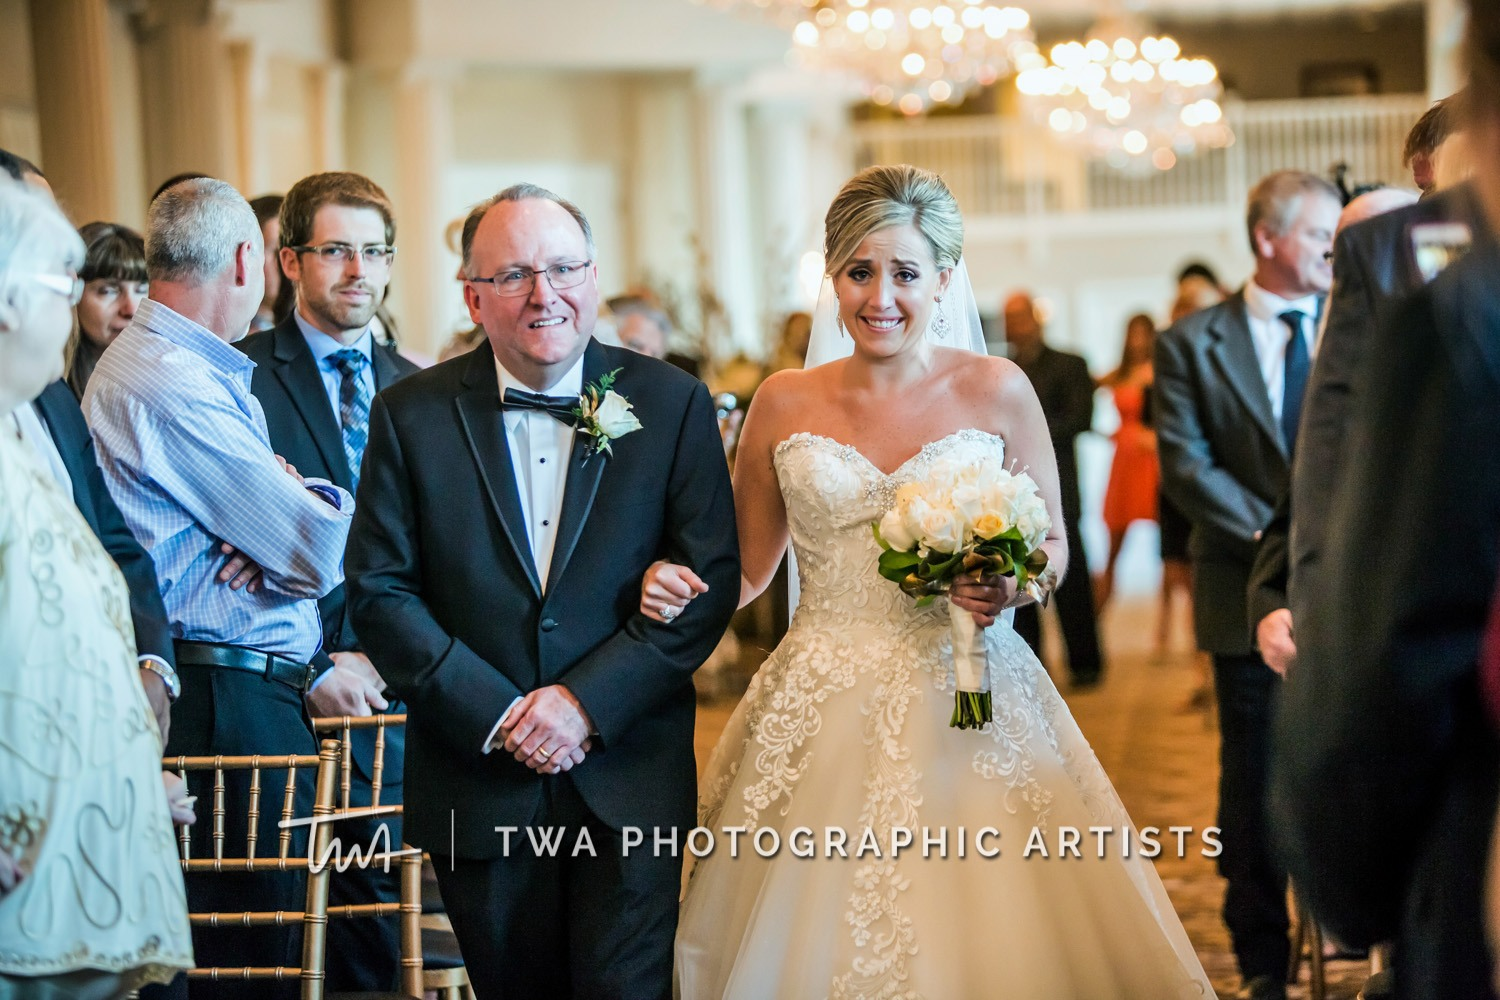 Chicago-Wedding-Photographer-TWA-Photographic-Artists-Abbington-Banquets_Slattery_Swanberg_MiC_NS-0355_dw